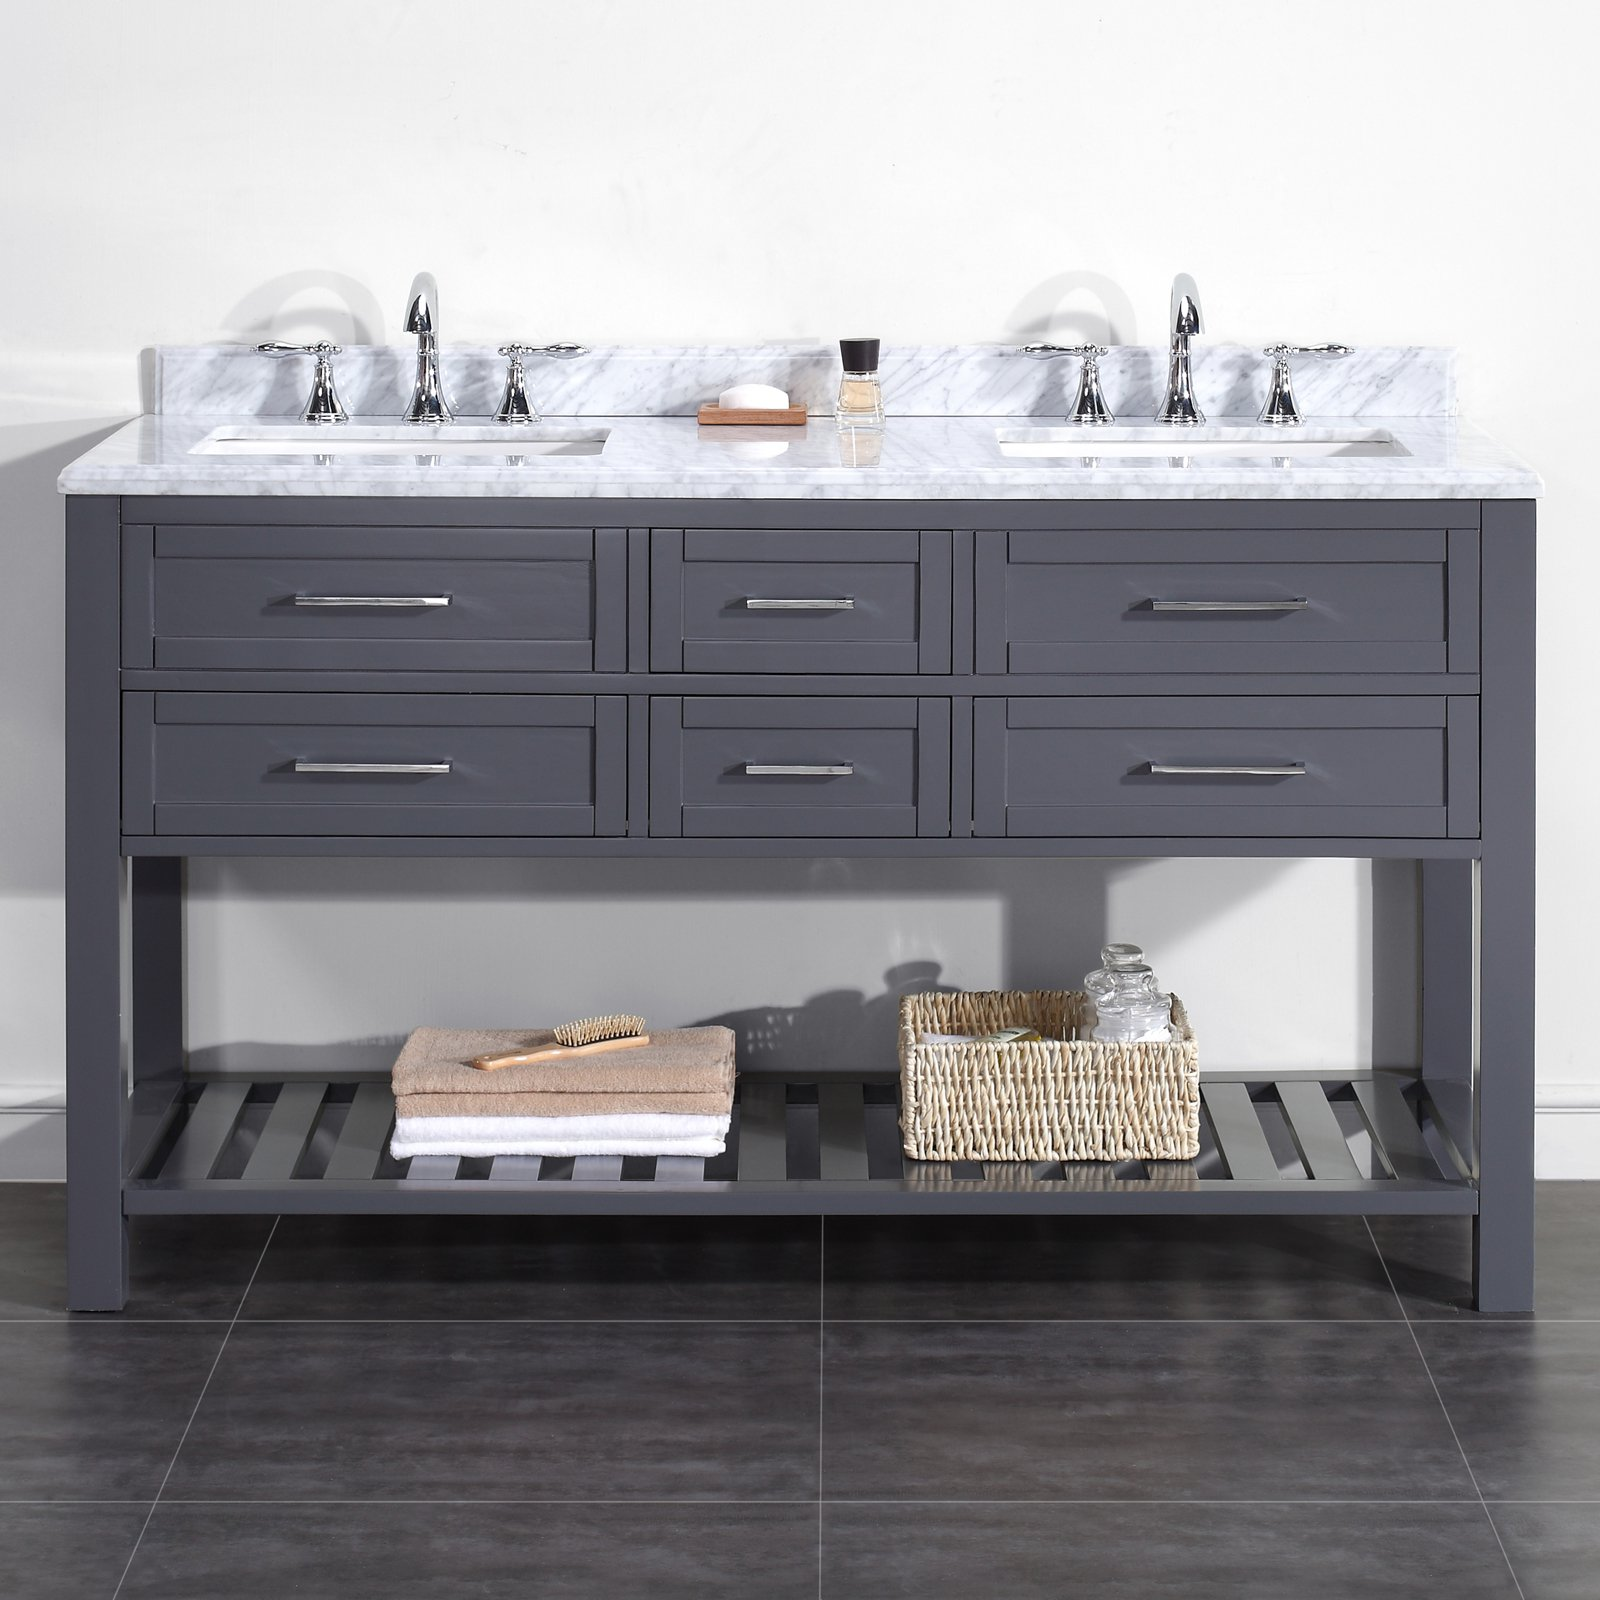 OVE Decors Pasadenas 60 in. Double Bathroom Vanity